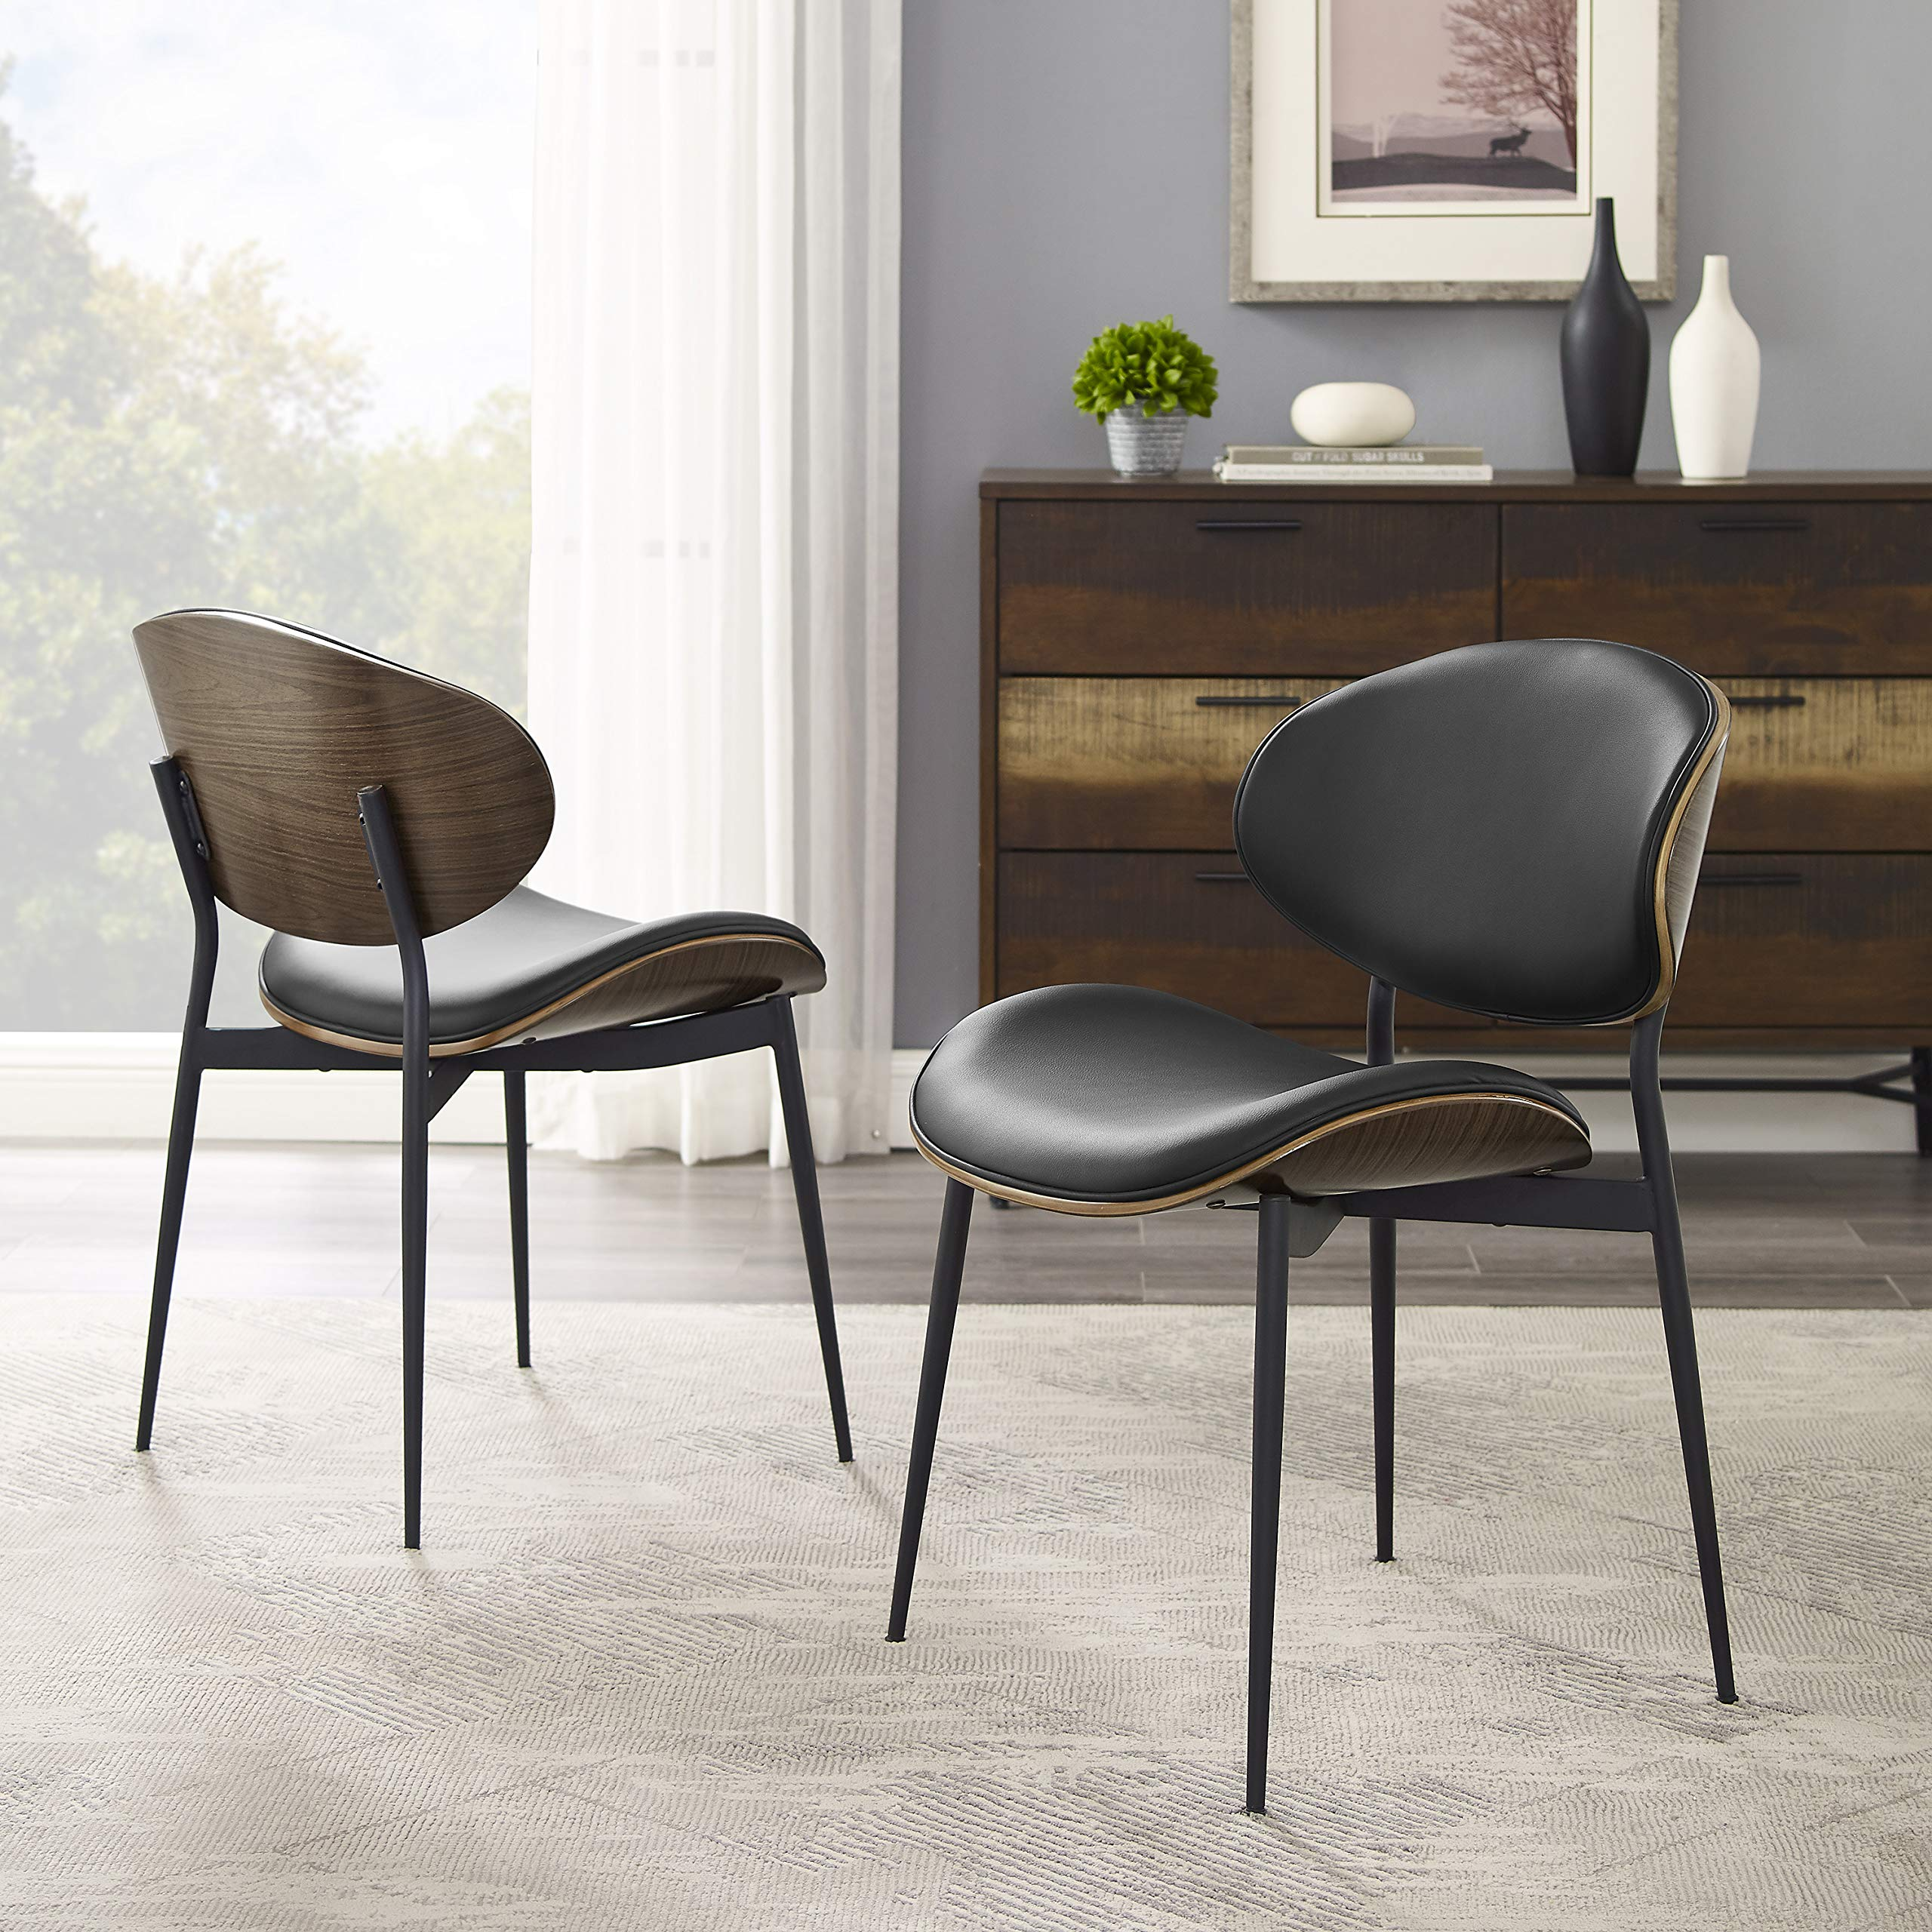 Image of: Art Leon Dining Chairs Set Of 2 Mid Century Modern Retro Black Faux Leather Upholstered Dining Chairs With Metal Legs Bentwood Side Chairs For Kitchen Dining Room Living Room Bedroom Desk